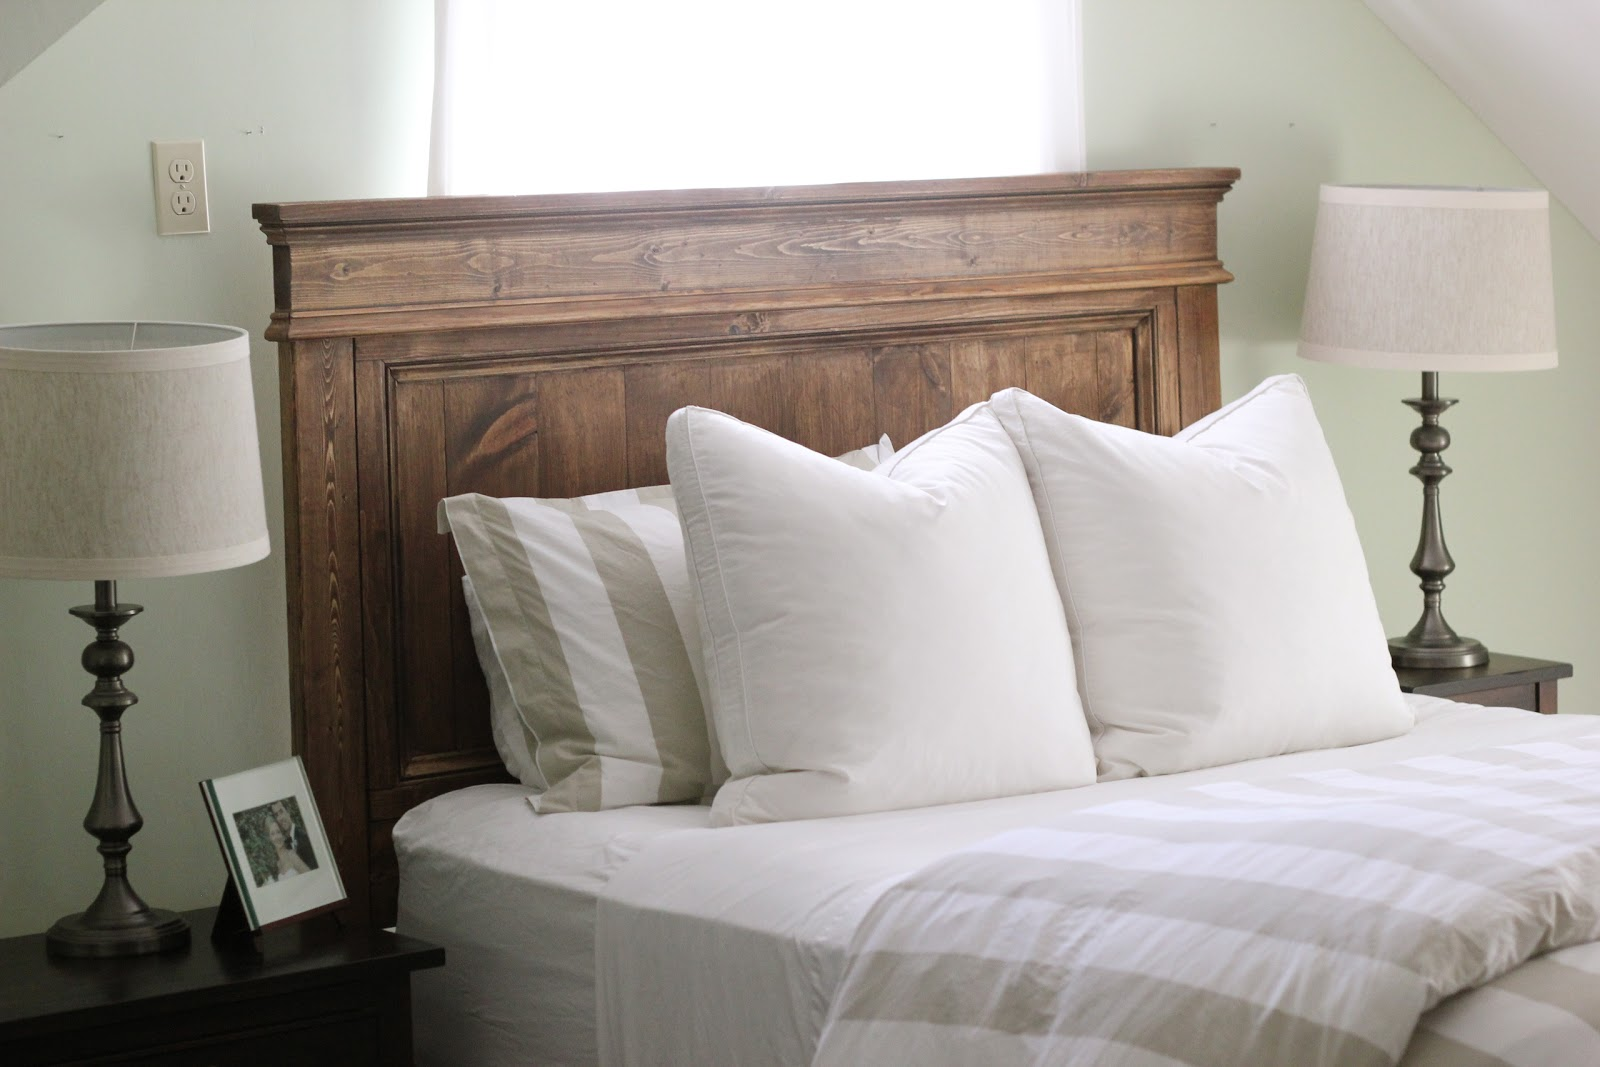 Jenny Steffens Hobick: We built a bed! DIY Wooden Headboard